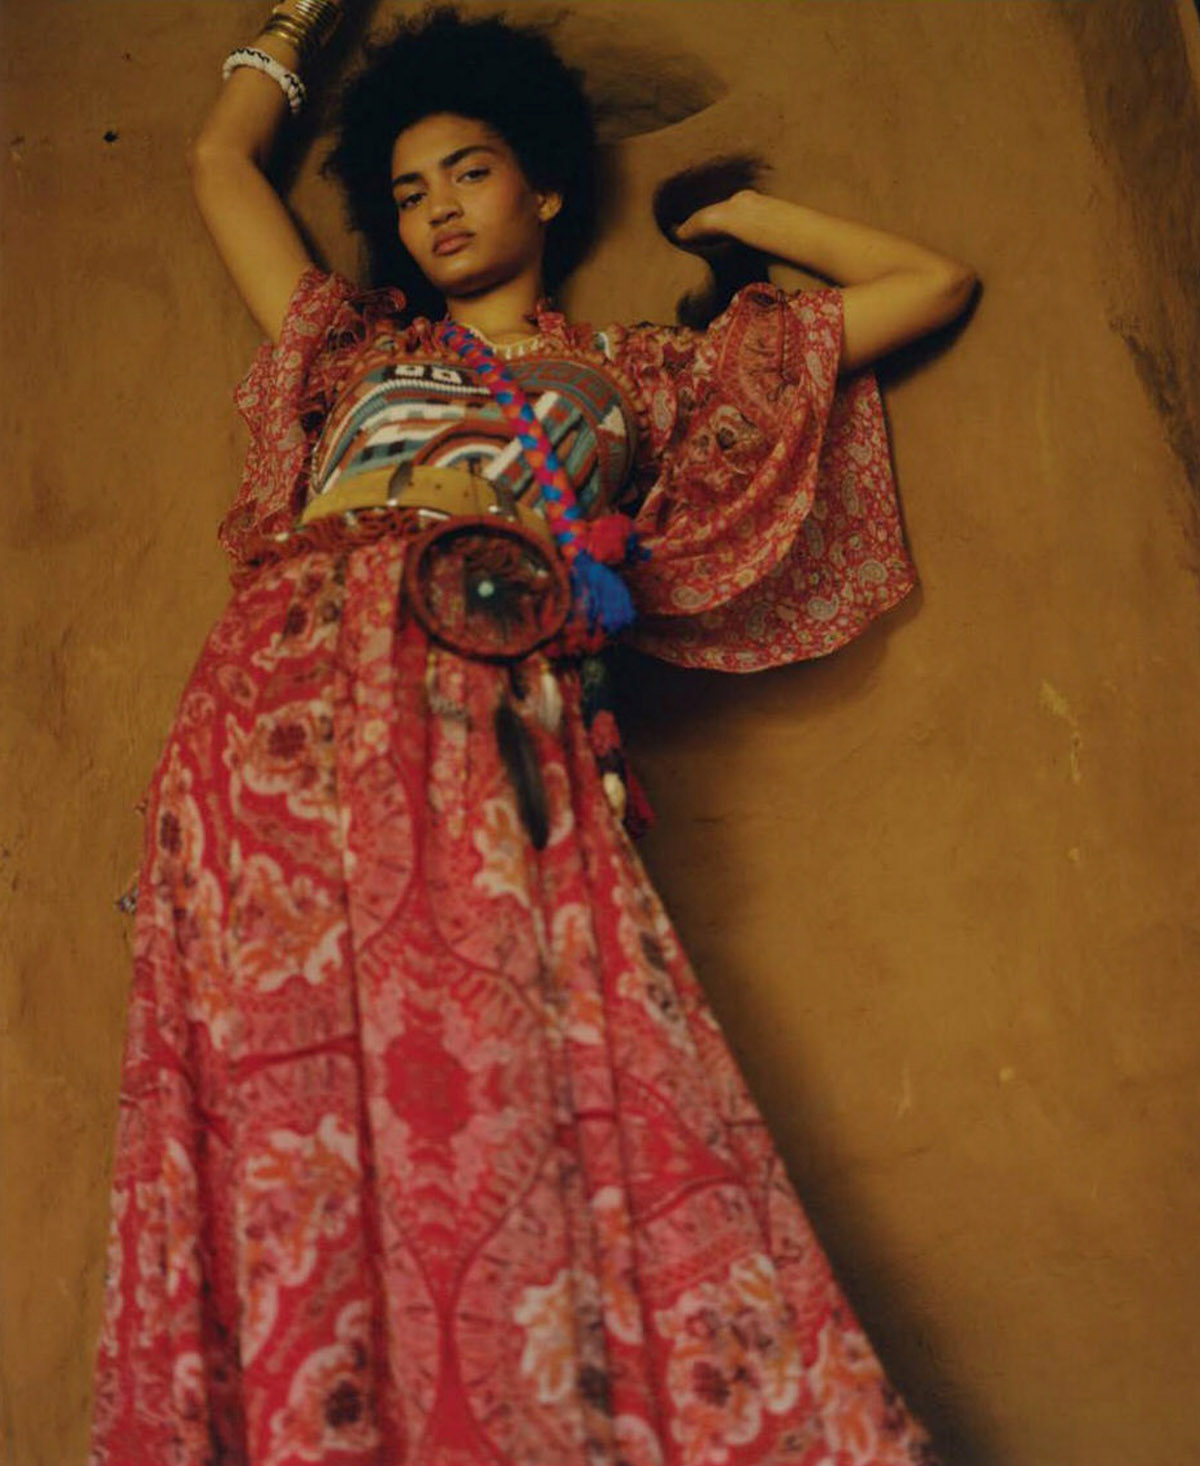 Anyelina Rosa by Peter Ash Lee for Vogue Mexico & Latin America July 2021